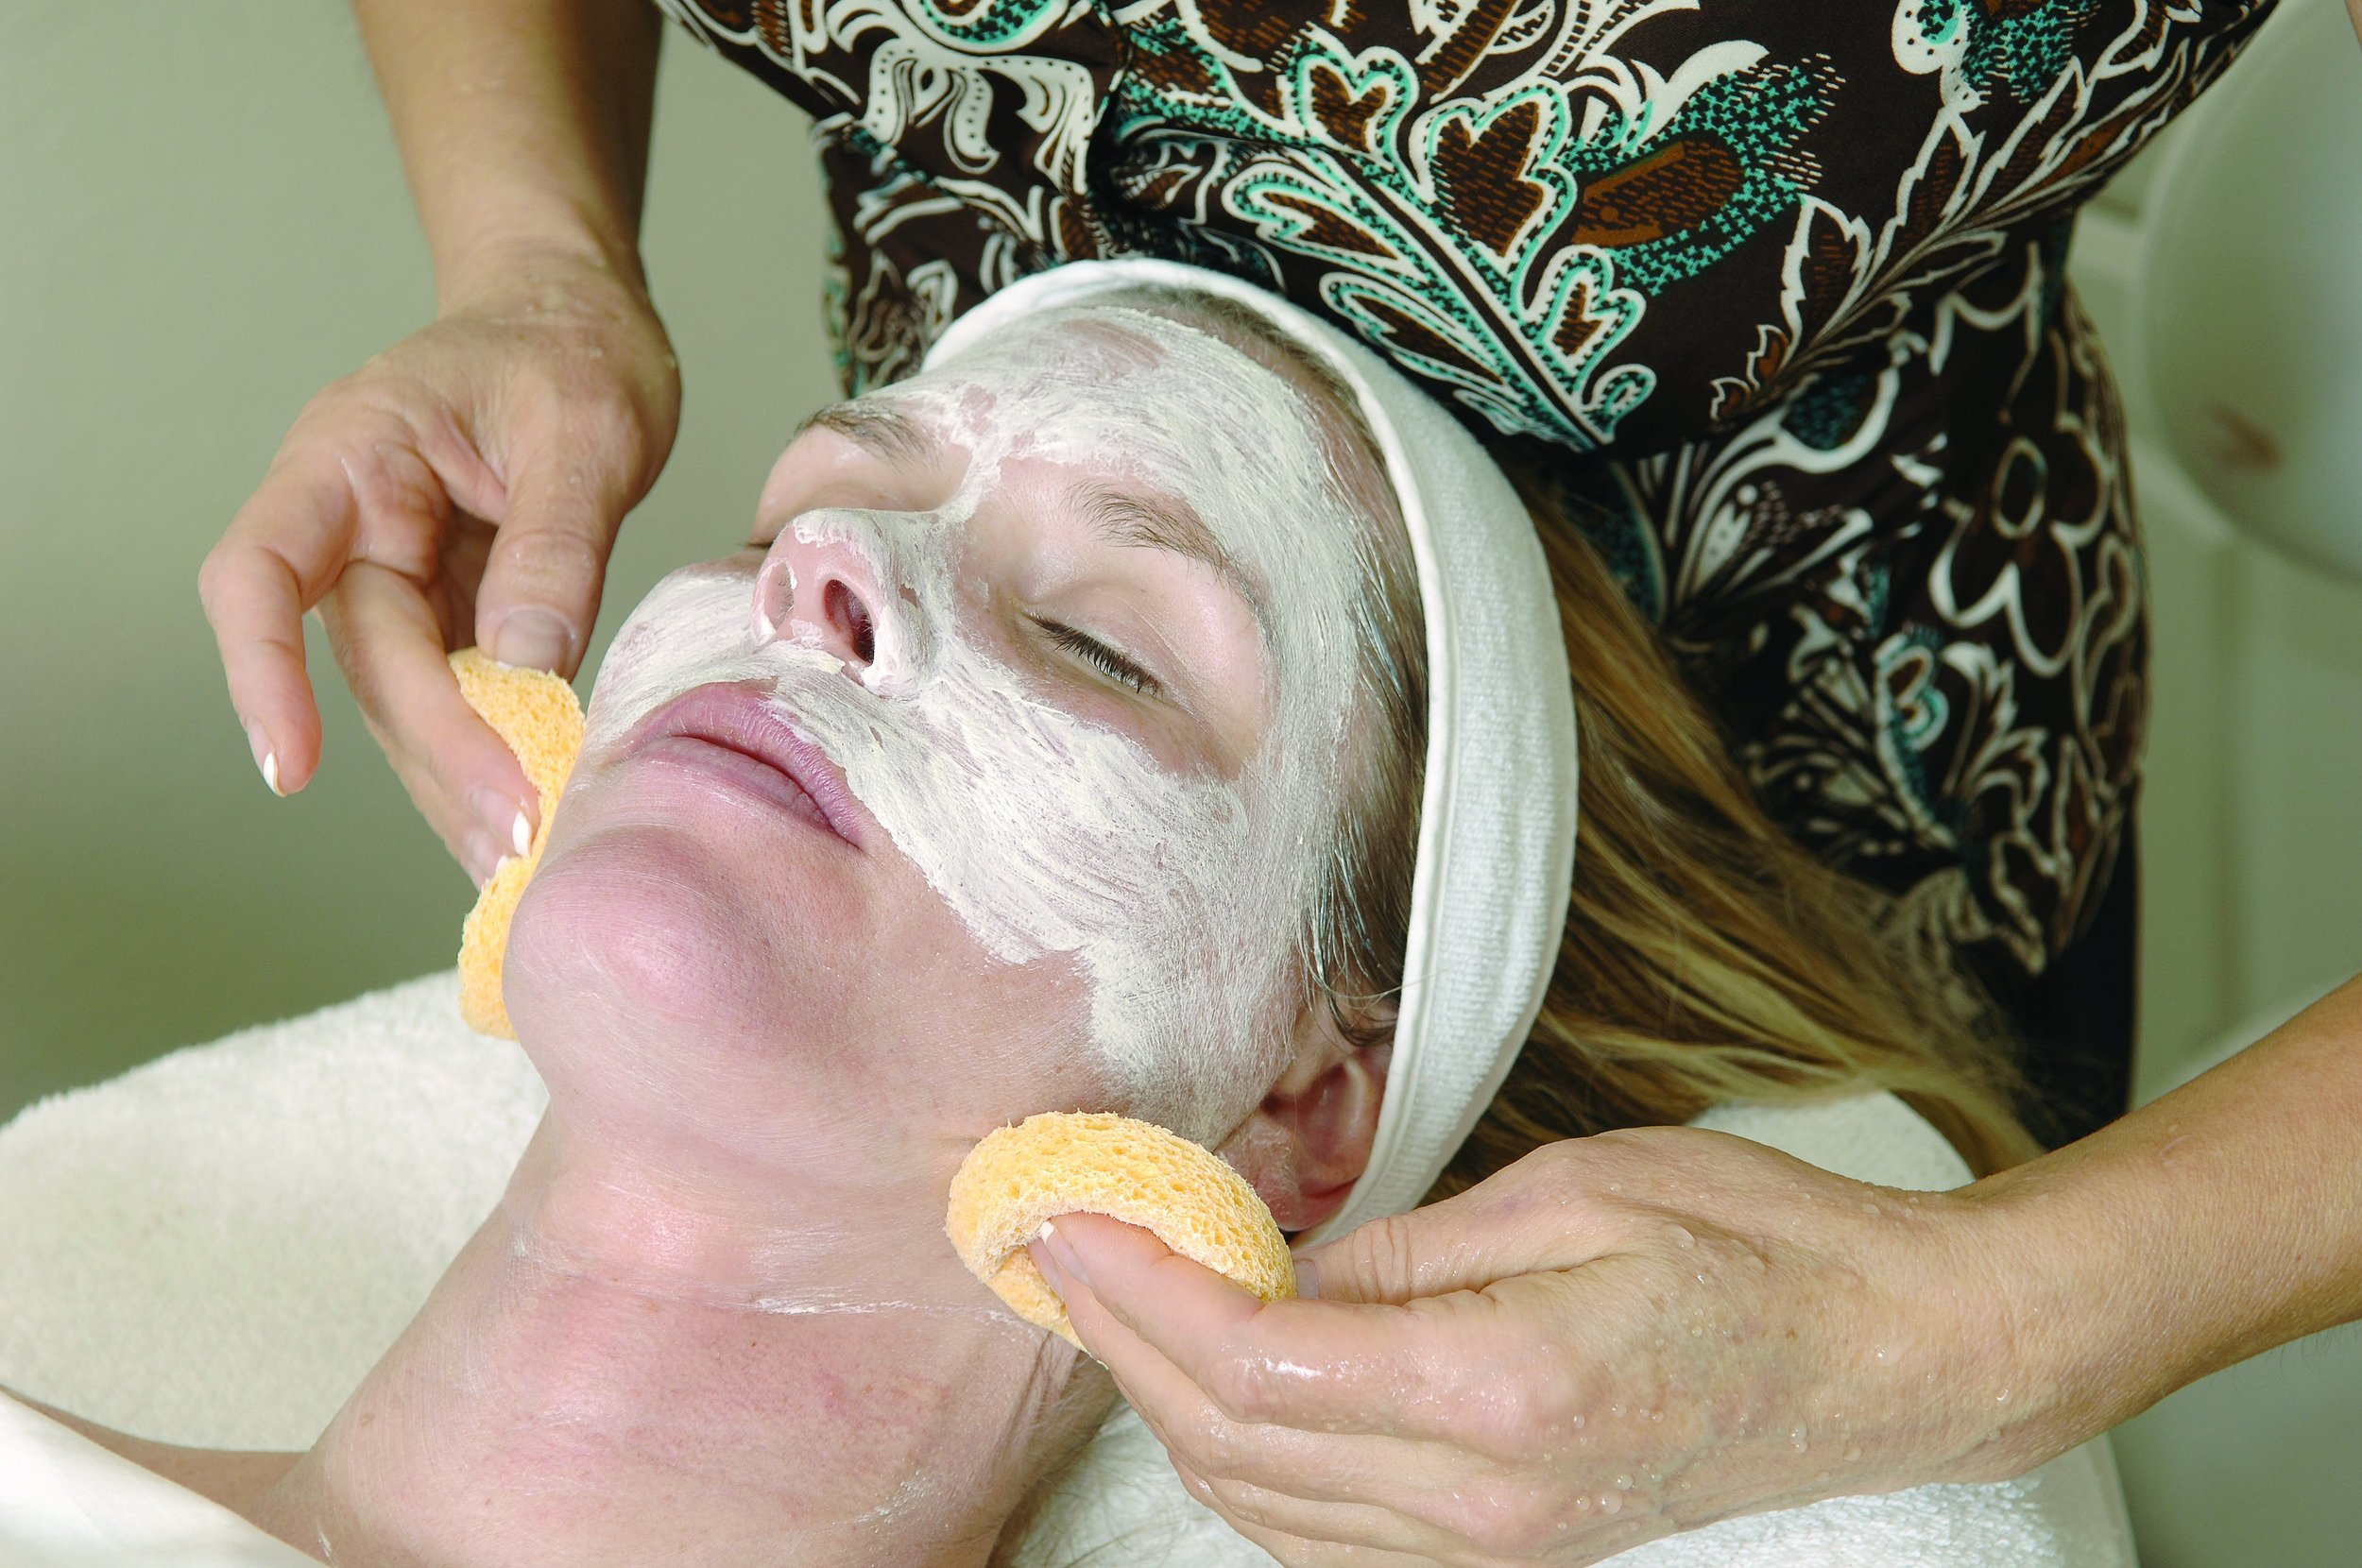 what we do - A full menu of facials and peels using the finest skin care products from Dermalogica.